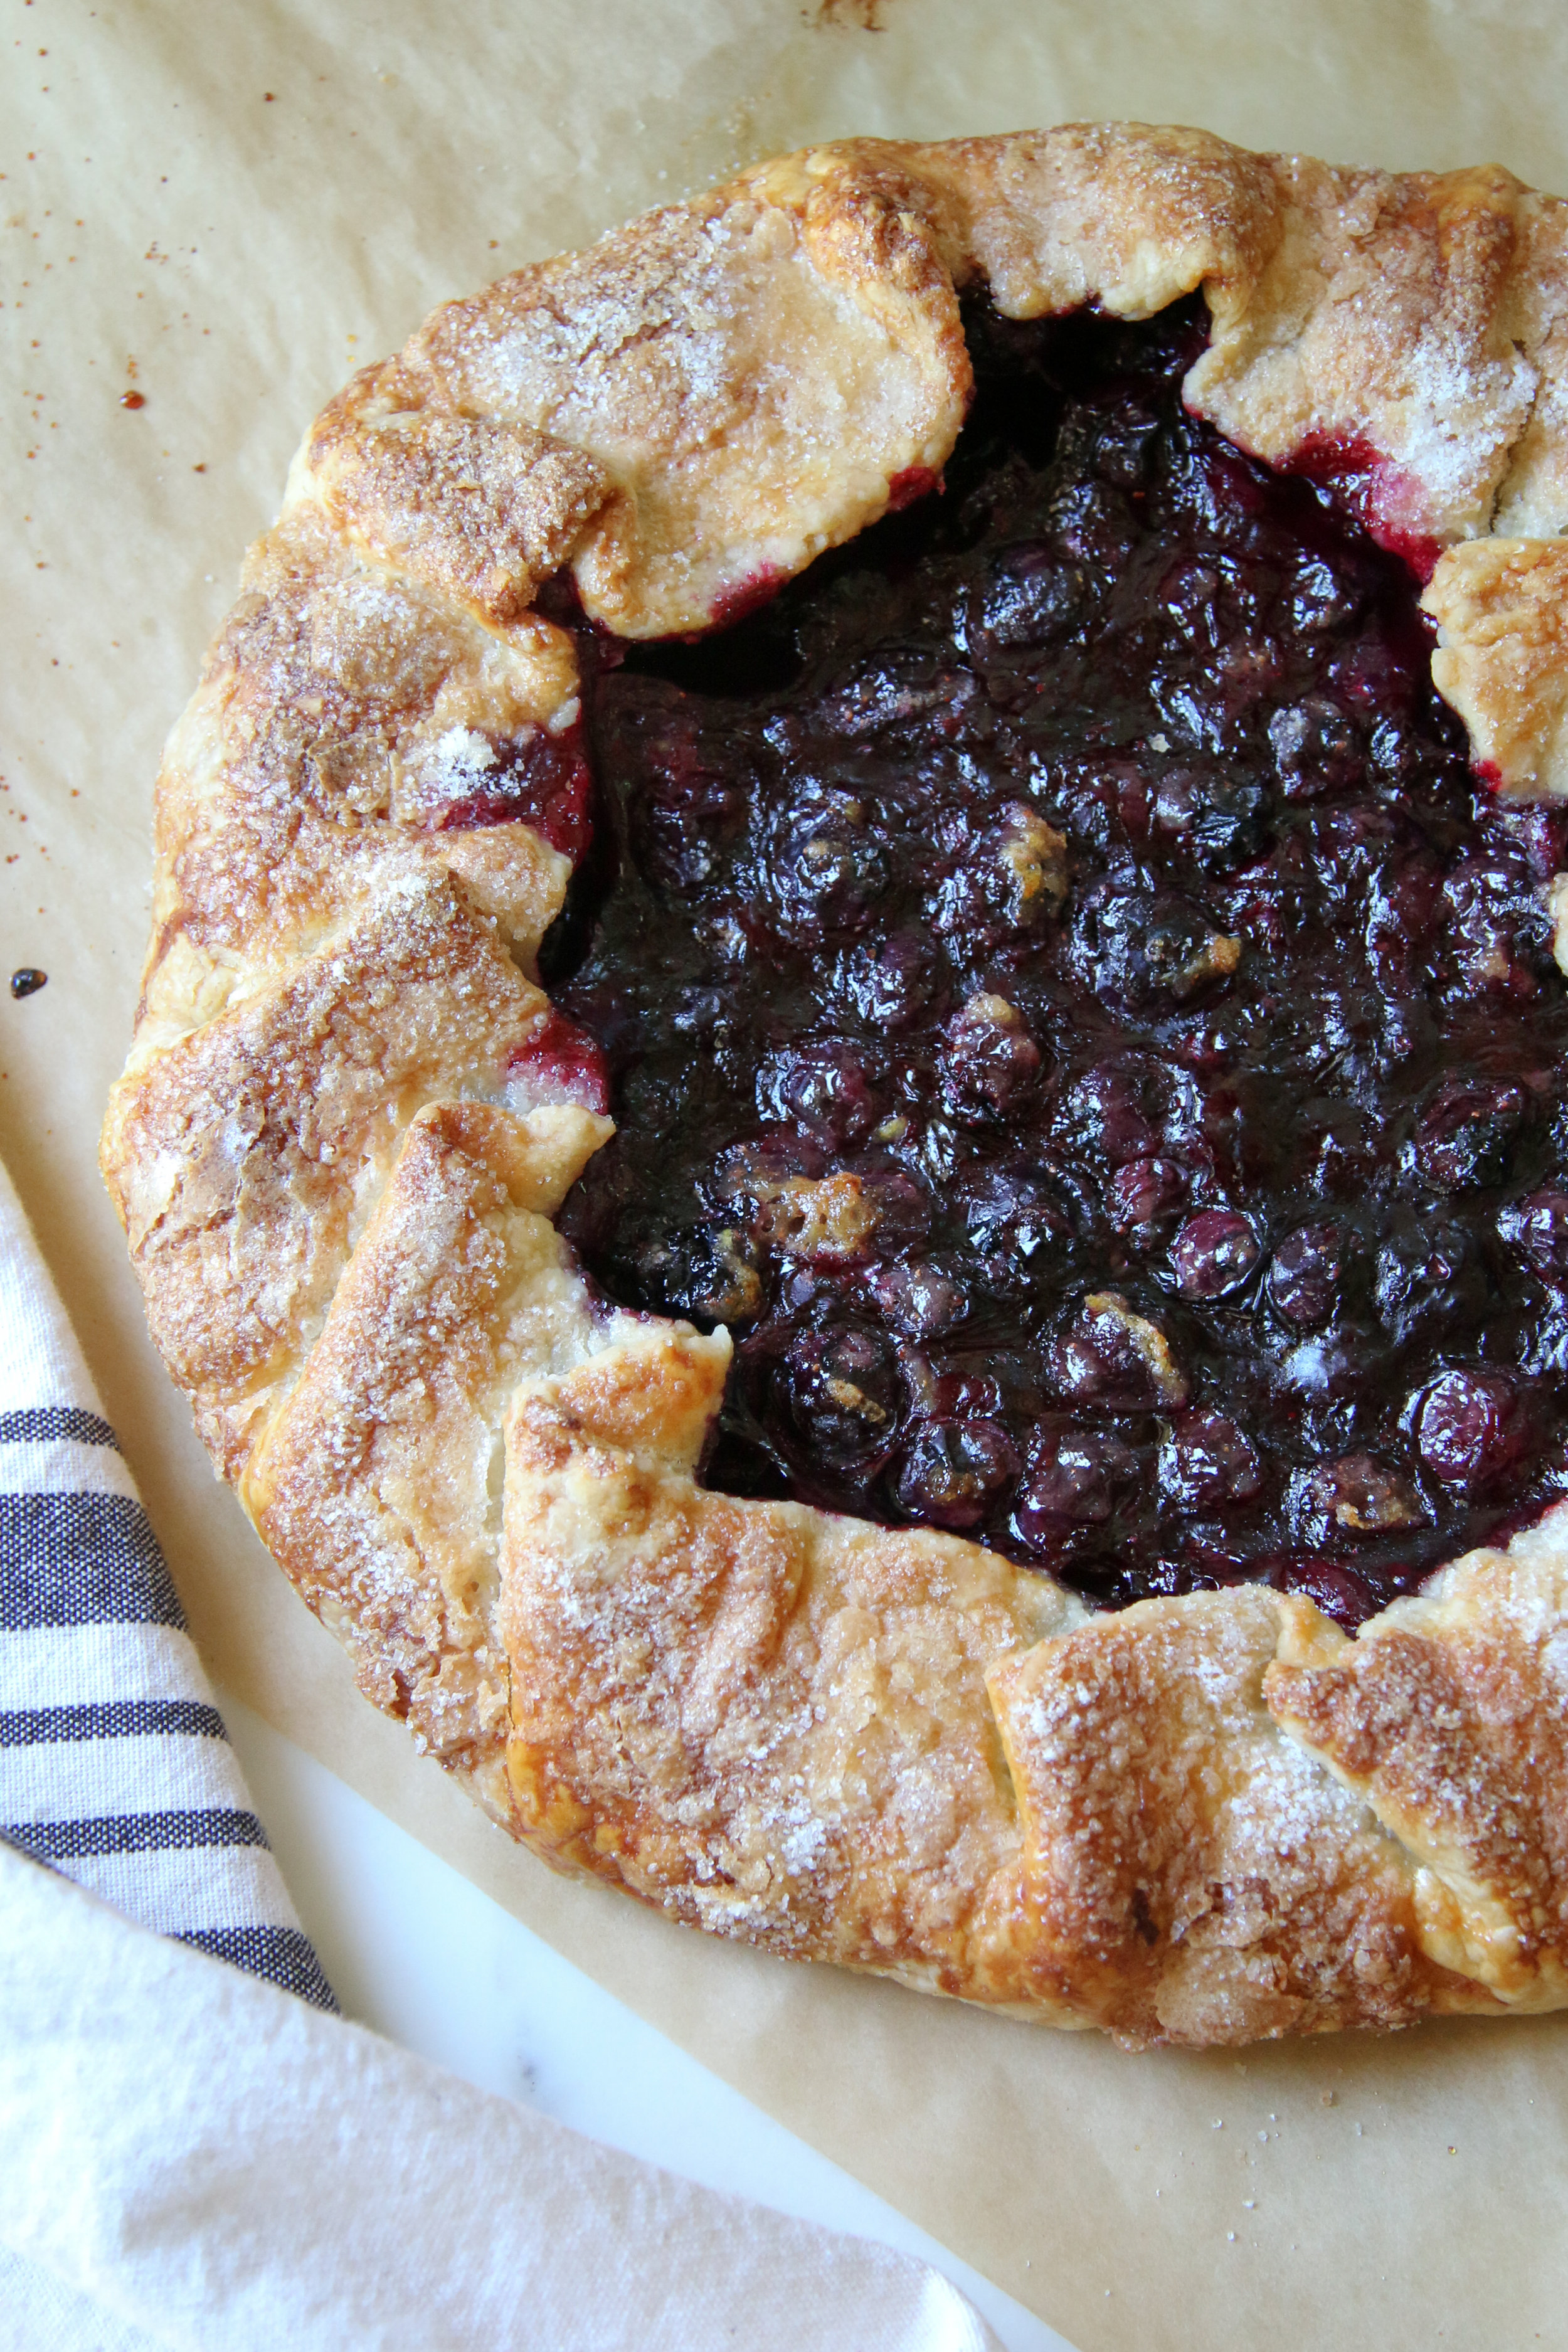 If you want another recipe for that pastry crust try my Summer Blueberry Galette here. -